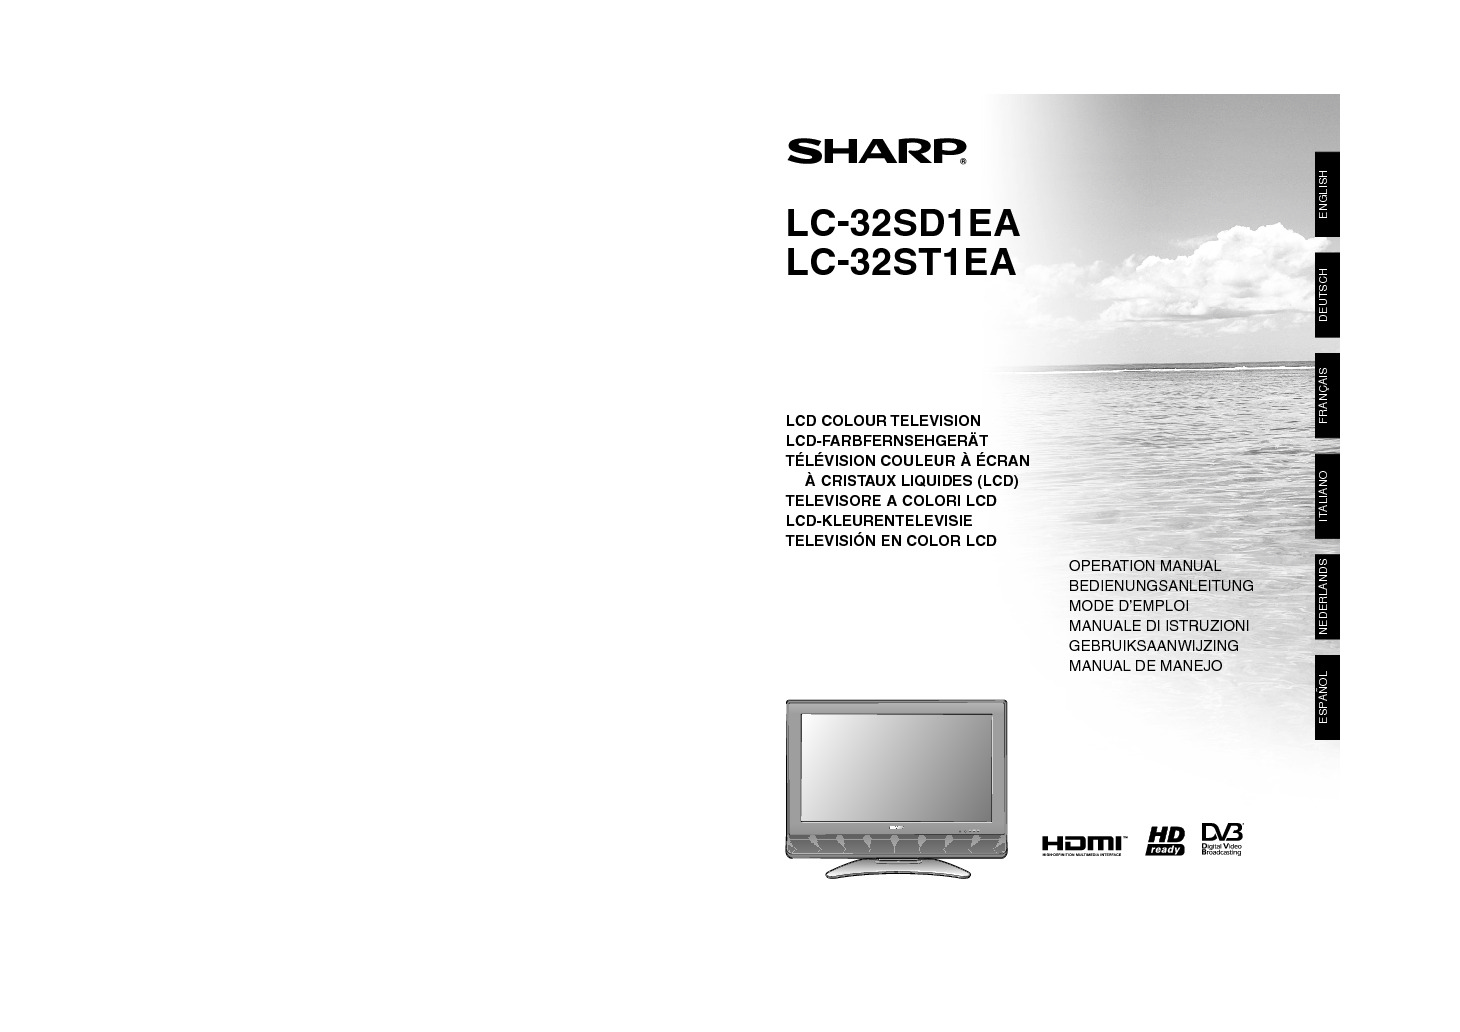 http://www.sharp.fr/cps/rde/xbcr/documents/documents/om/11_lcd-tv/LC32SD1EA-ST1EA_OM_FR.pdf